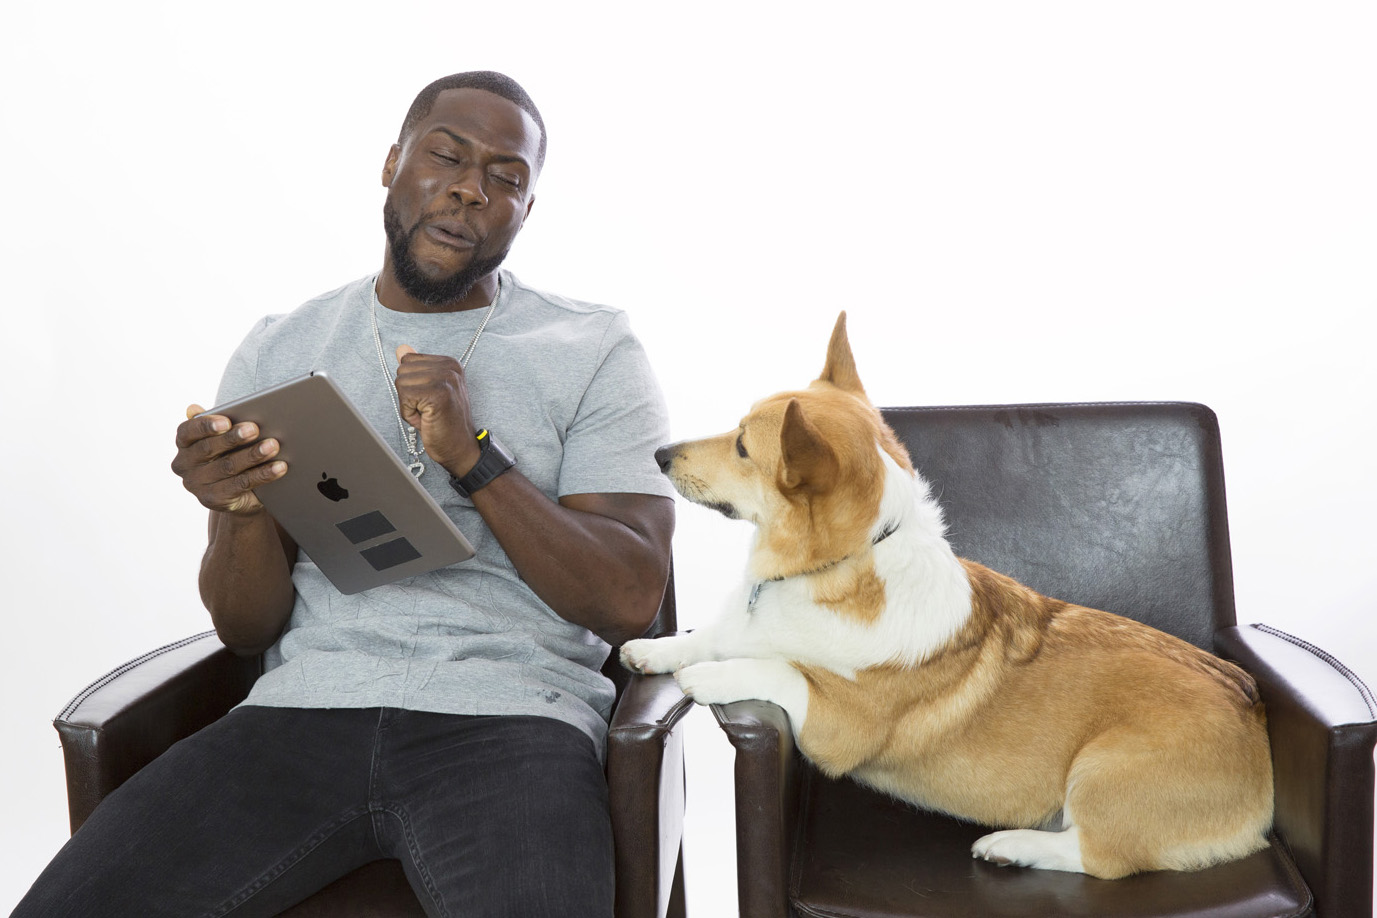 Kevin Hart for Glamour Video - The Secret Life of Pets Junket NYC